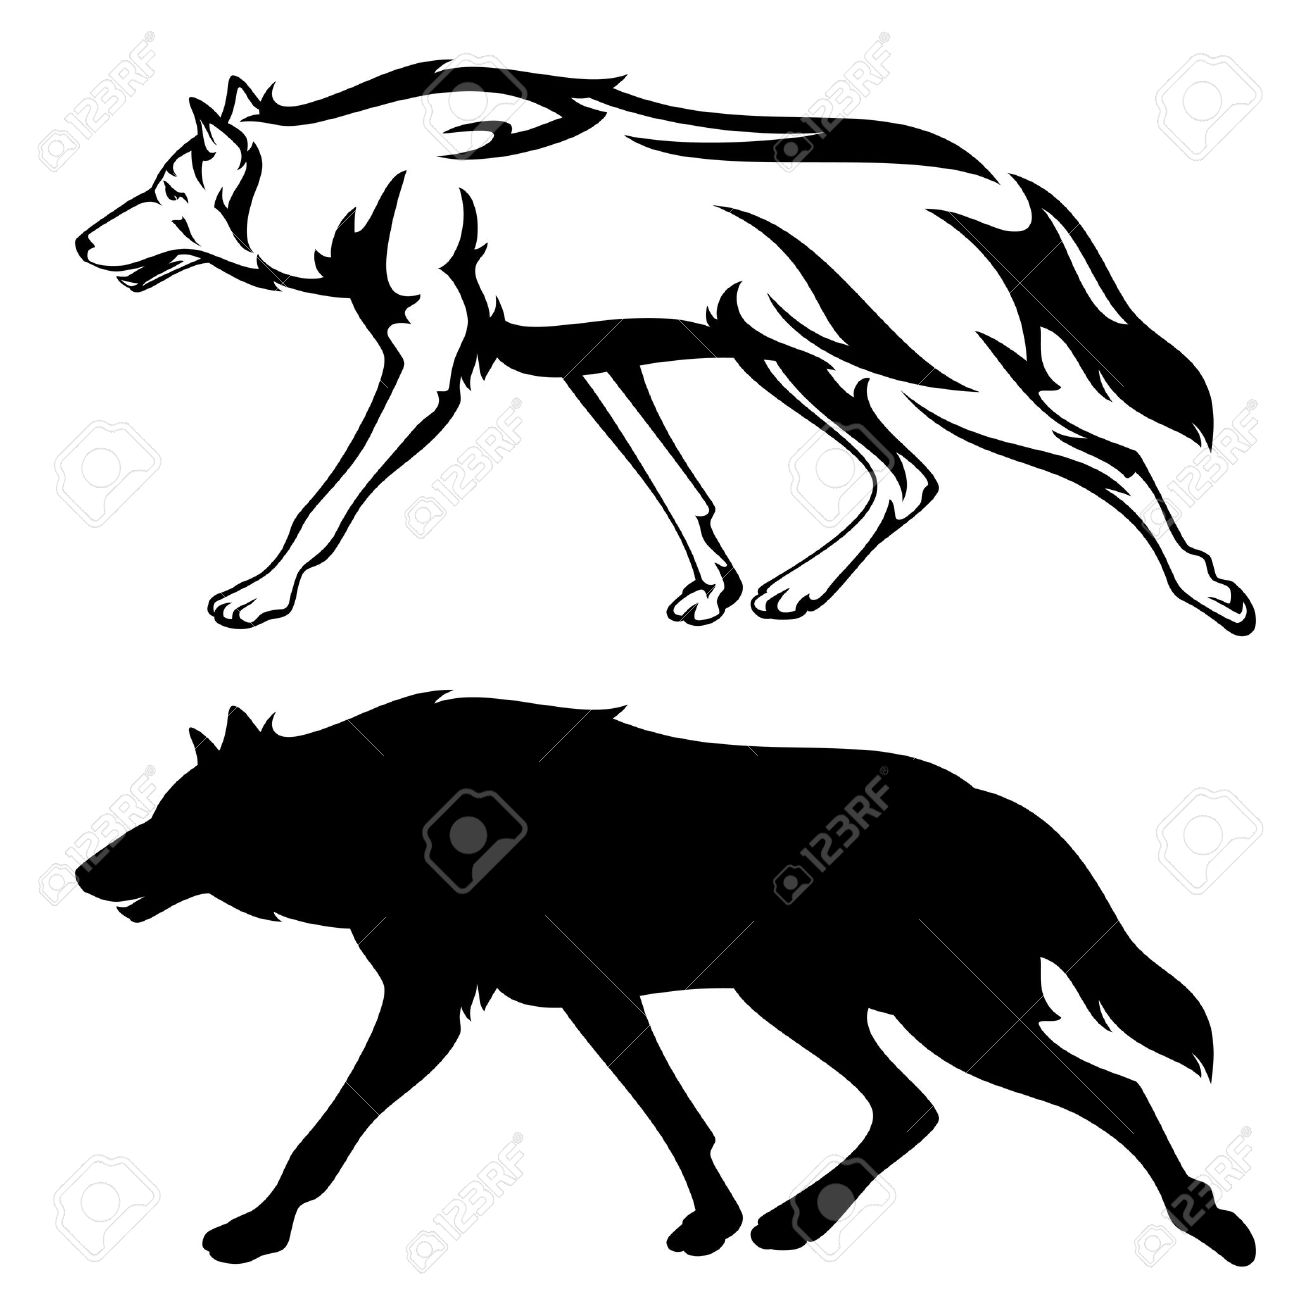 Running Wolf Outline And Silhouette Black And White Vector